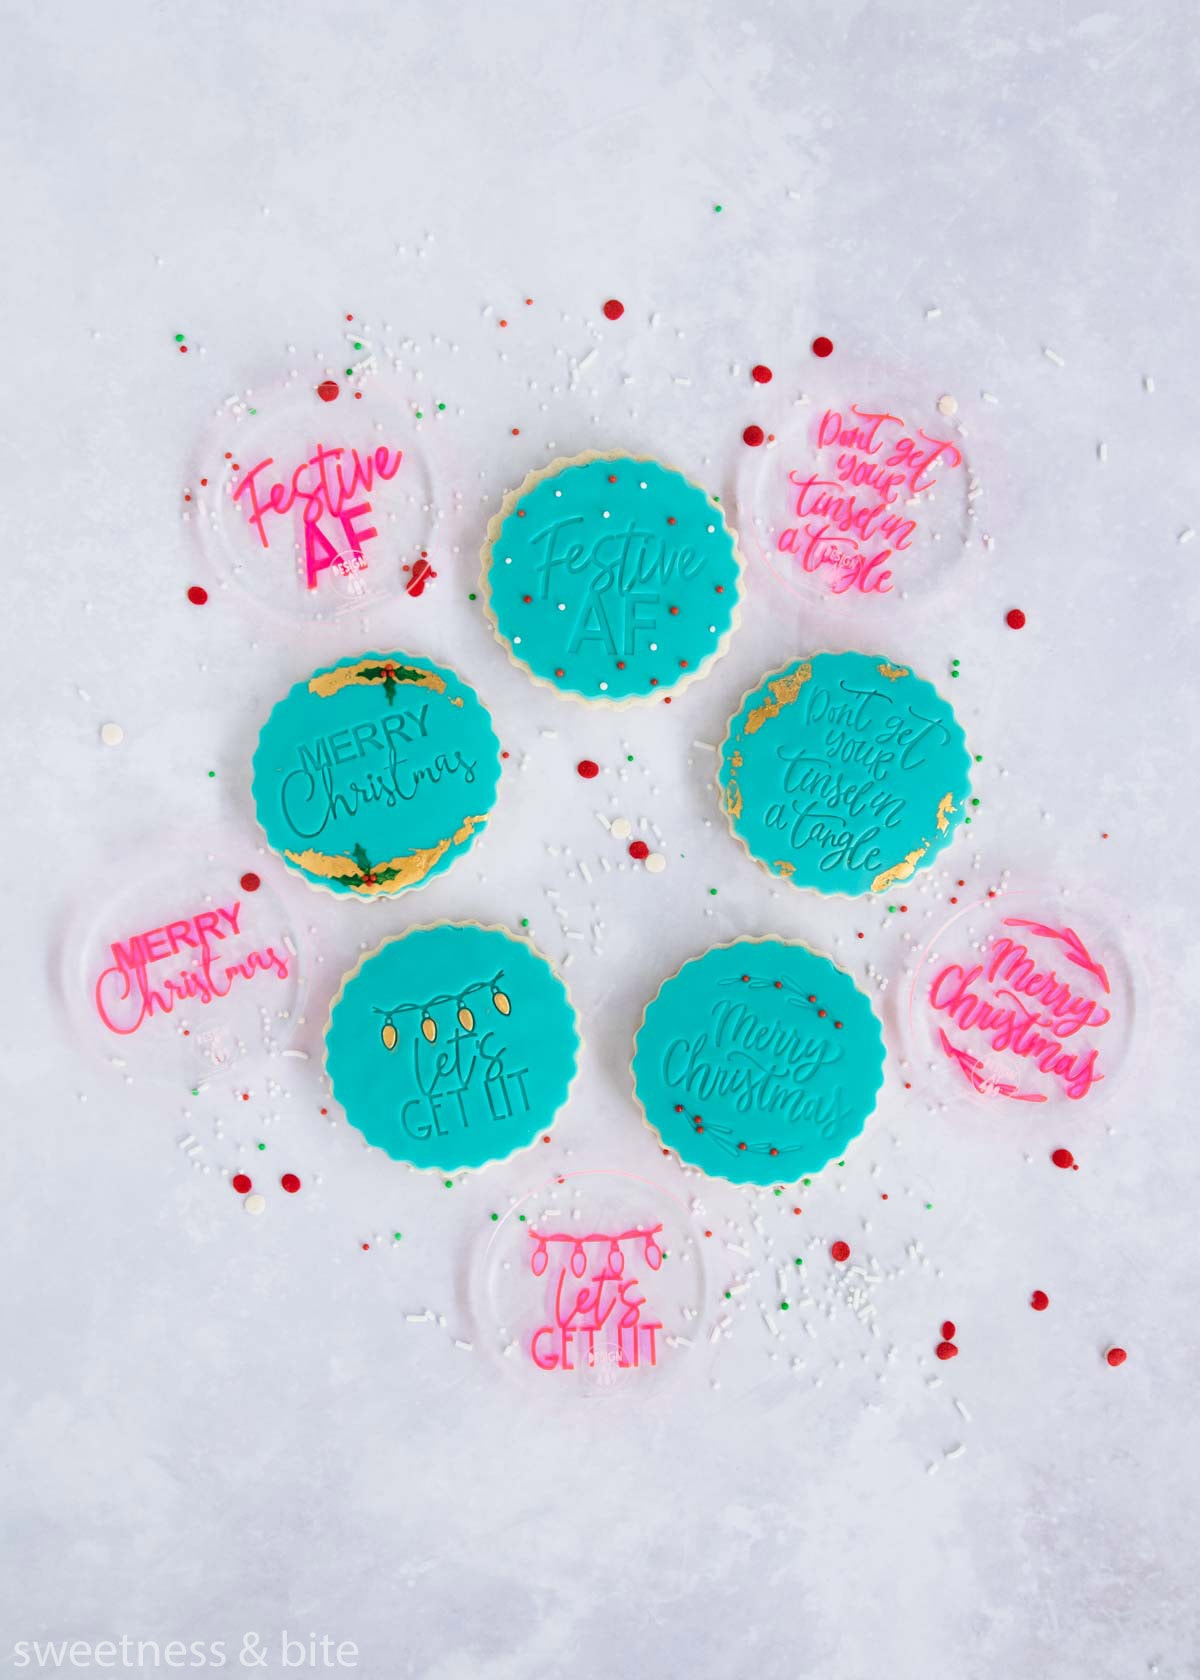 Round cookies decorated with teal fondant circles embossed with messages - Festive AF, Don't get your tinsel in a tangle, Merry Christmas and Let's get lit.